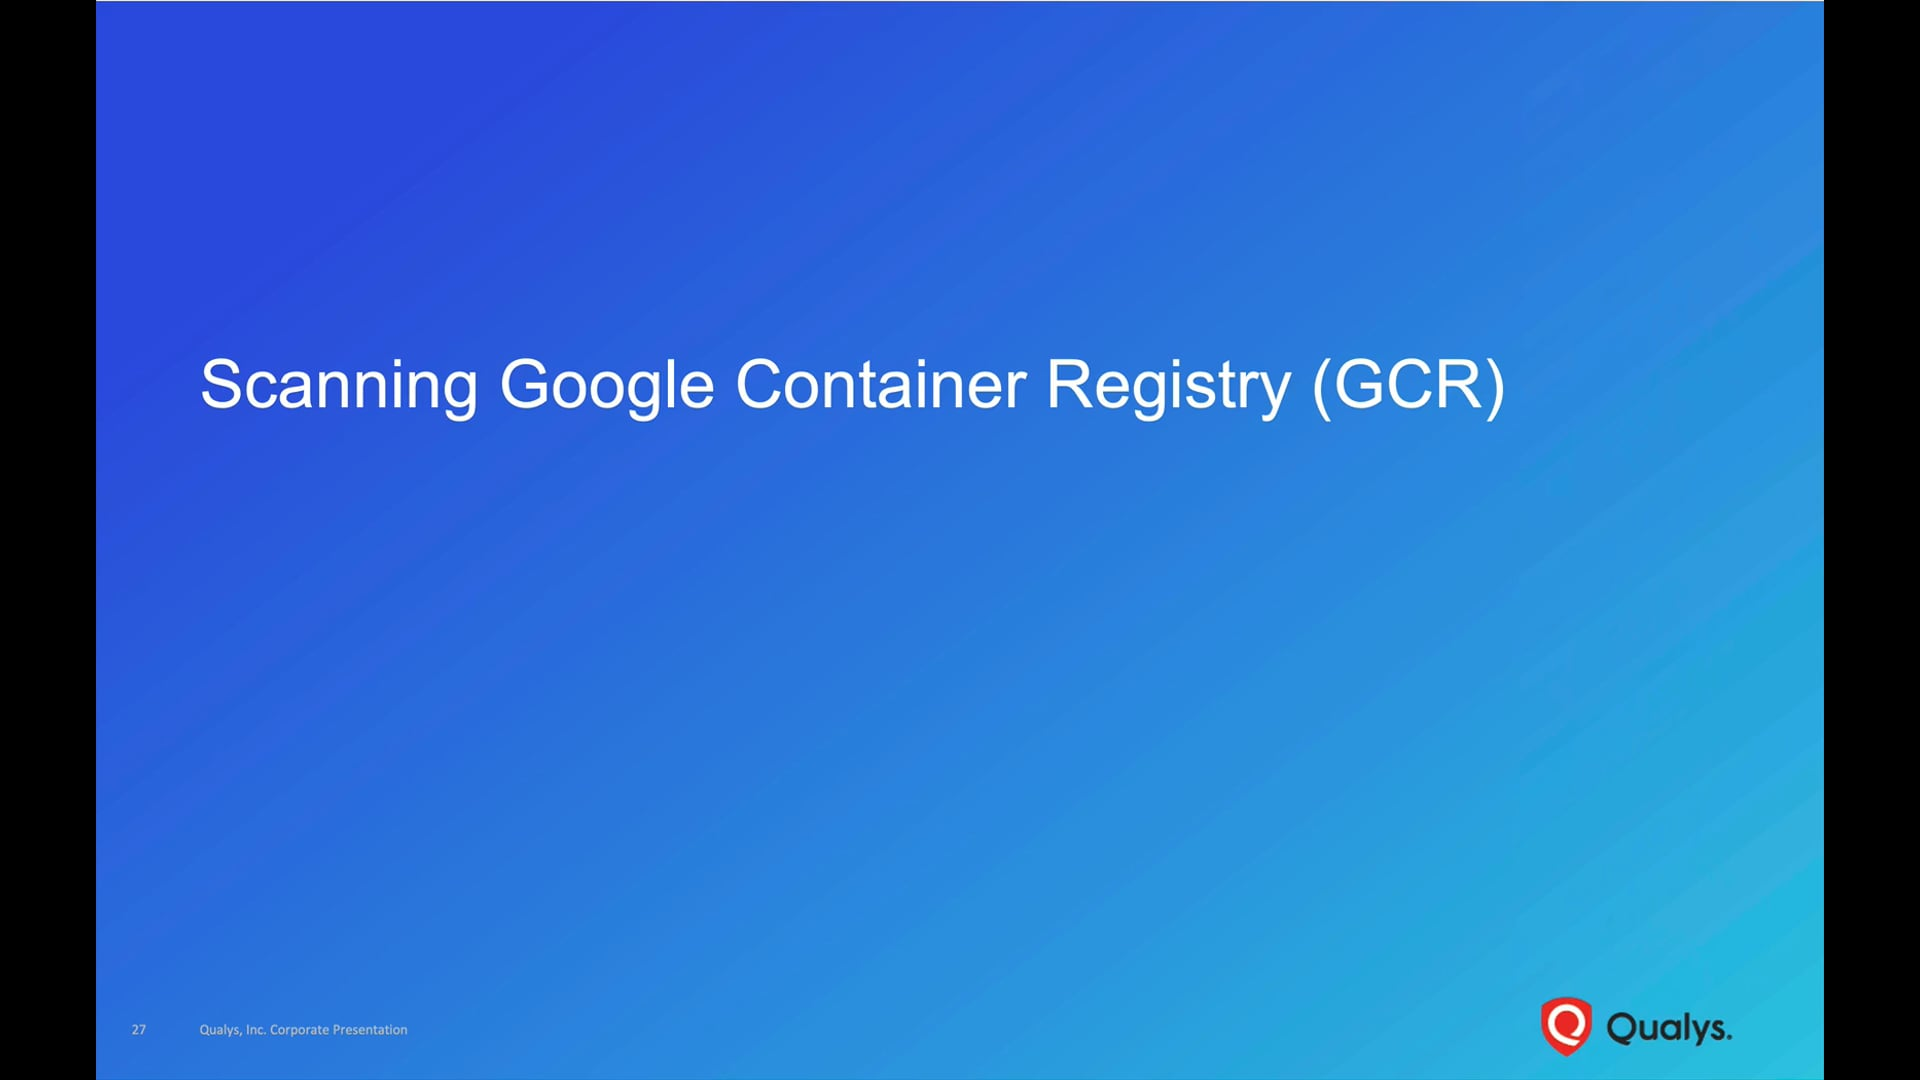 Scanning Google Container Registry (GCR)